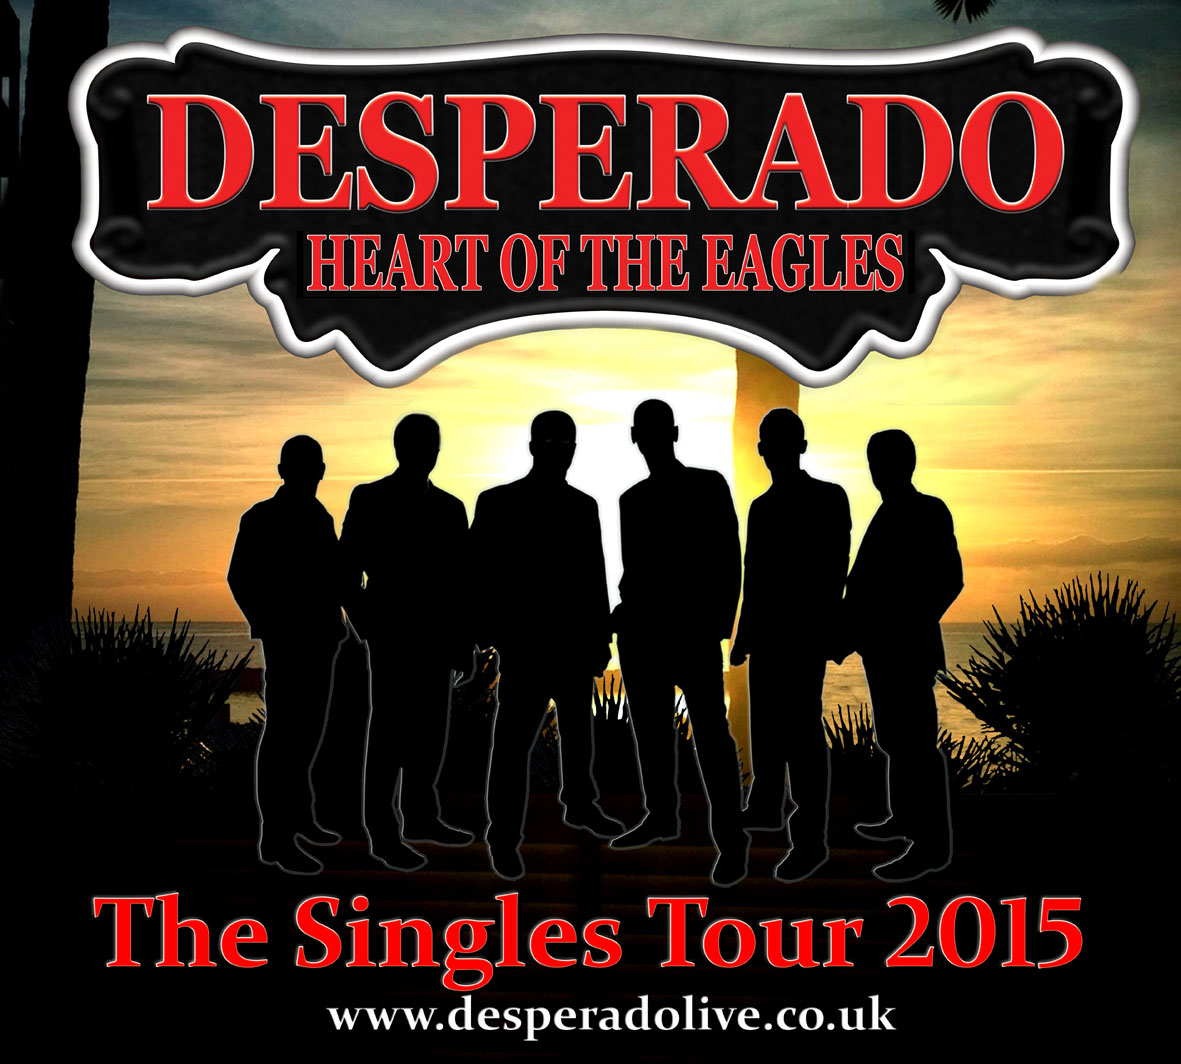 THE SINGLES TOUR 2015. - superb tribute to the music of The Eagles.